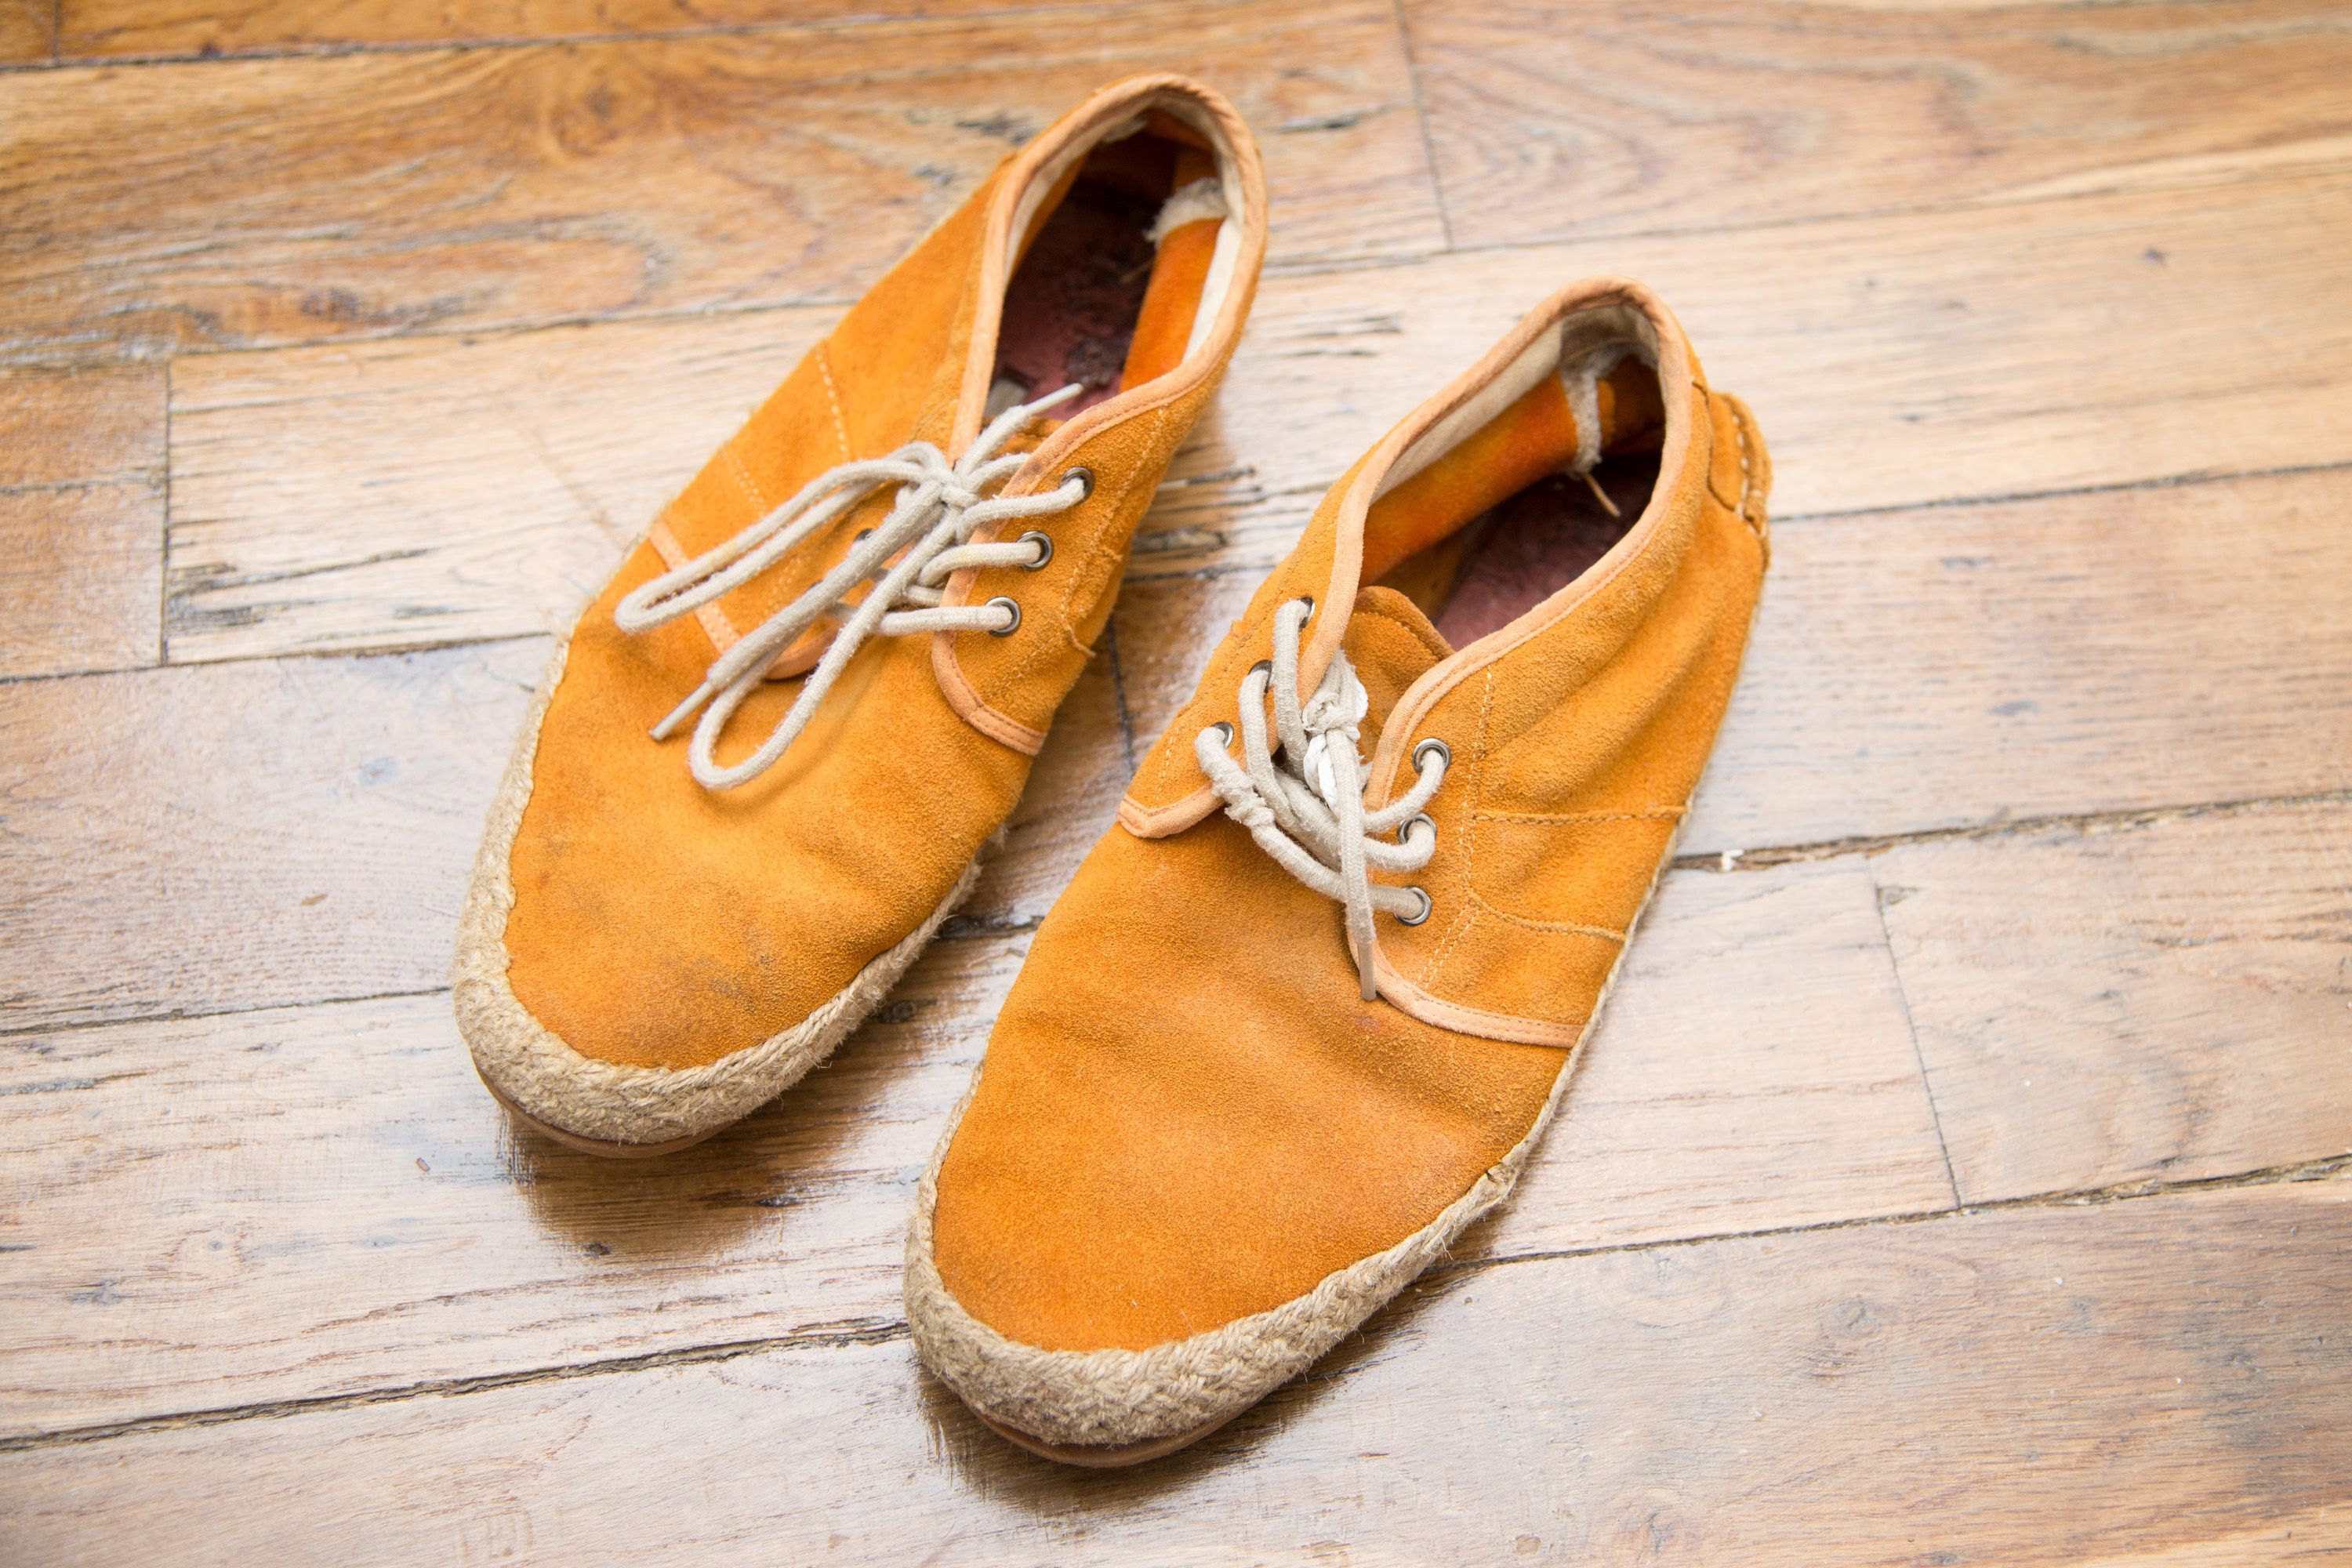 How To Remove Grease Stains From Suede Boots With Pictures